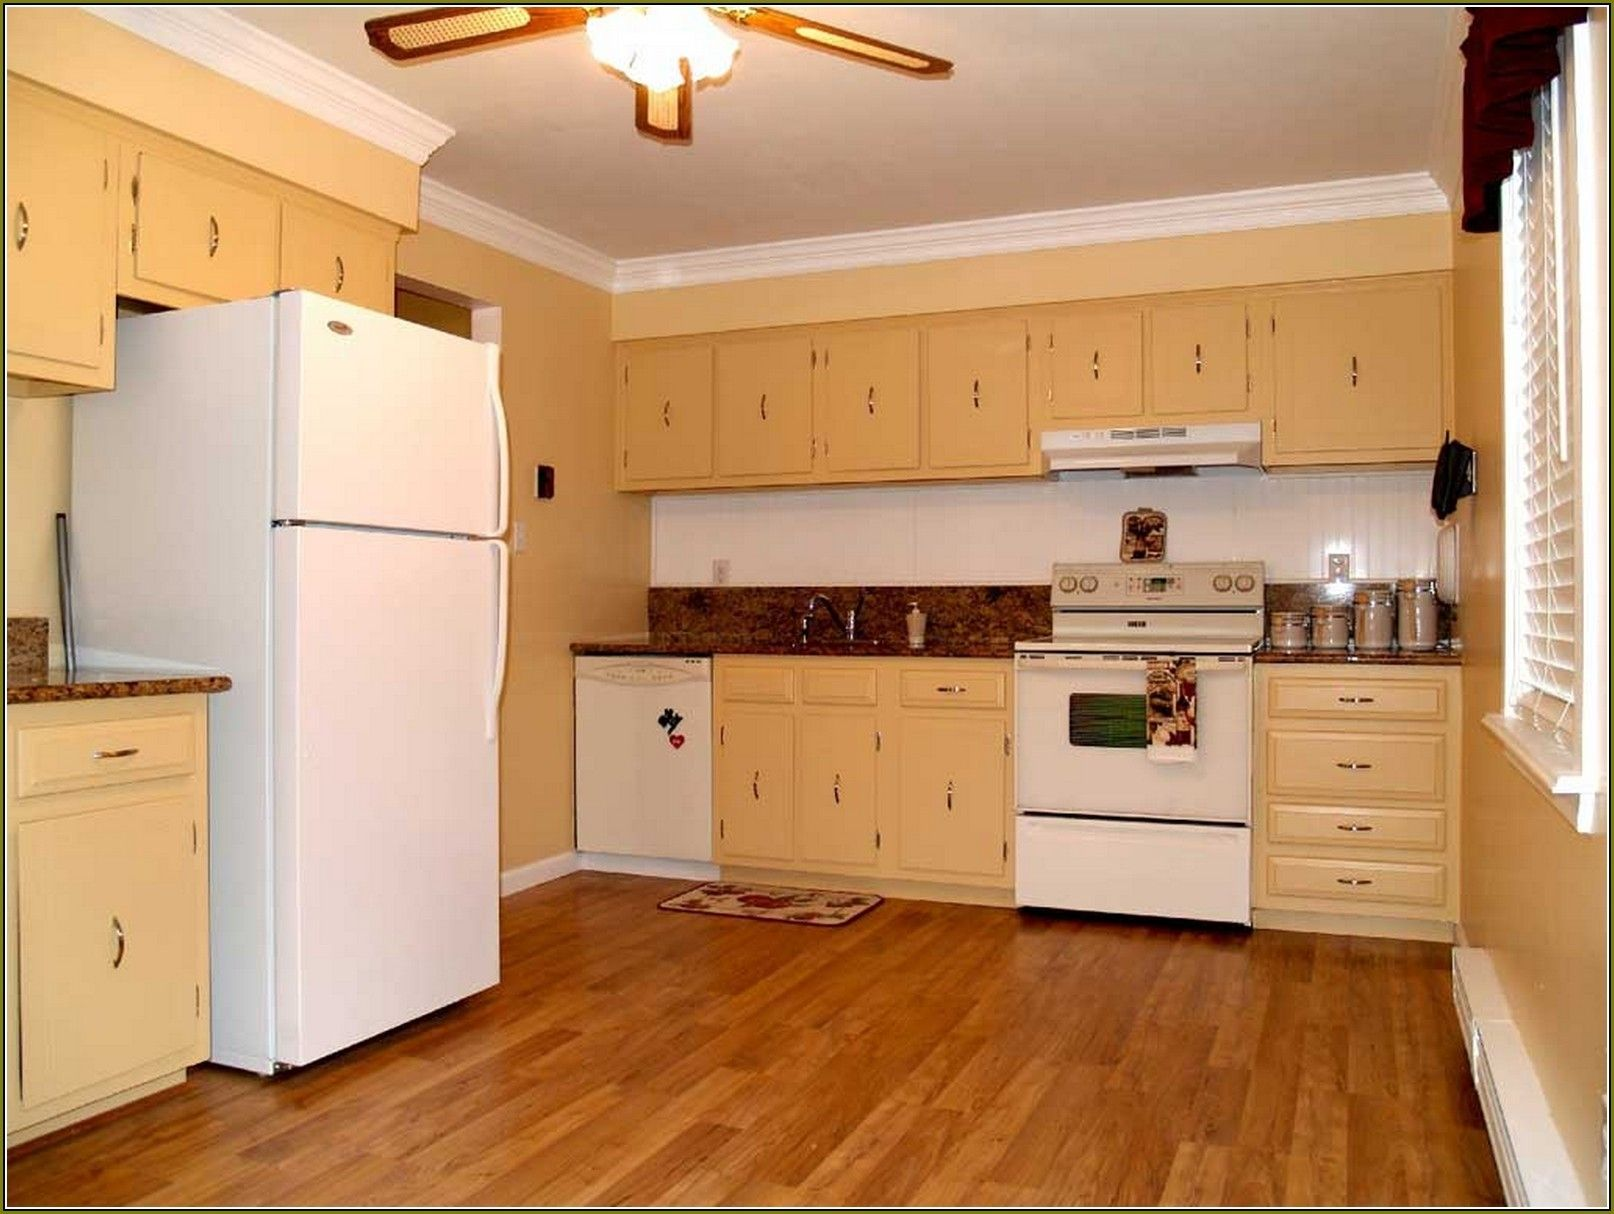 Best Plywood For Kitchen Cabinet Doors   http://betdaffaires.com ...